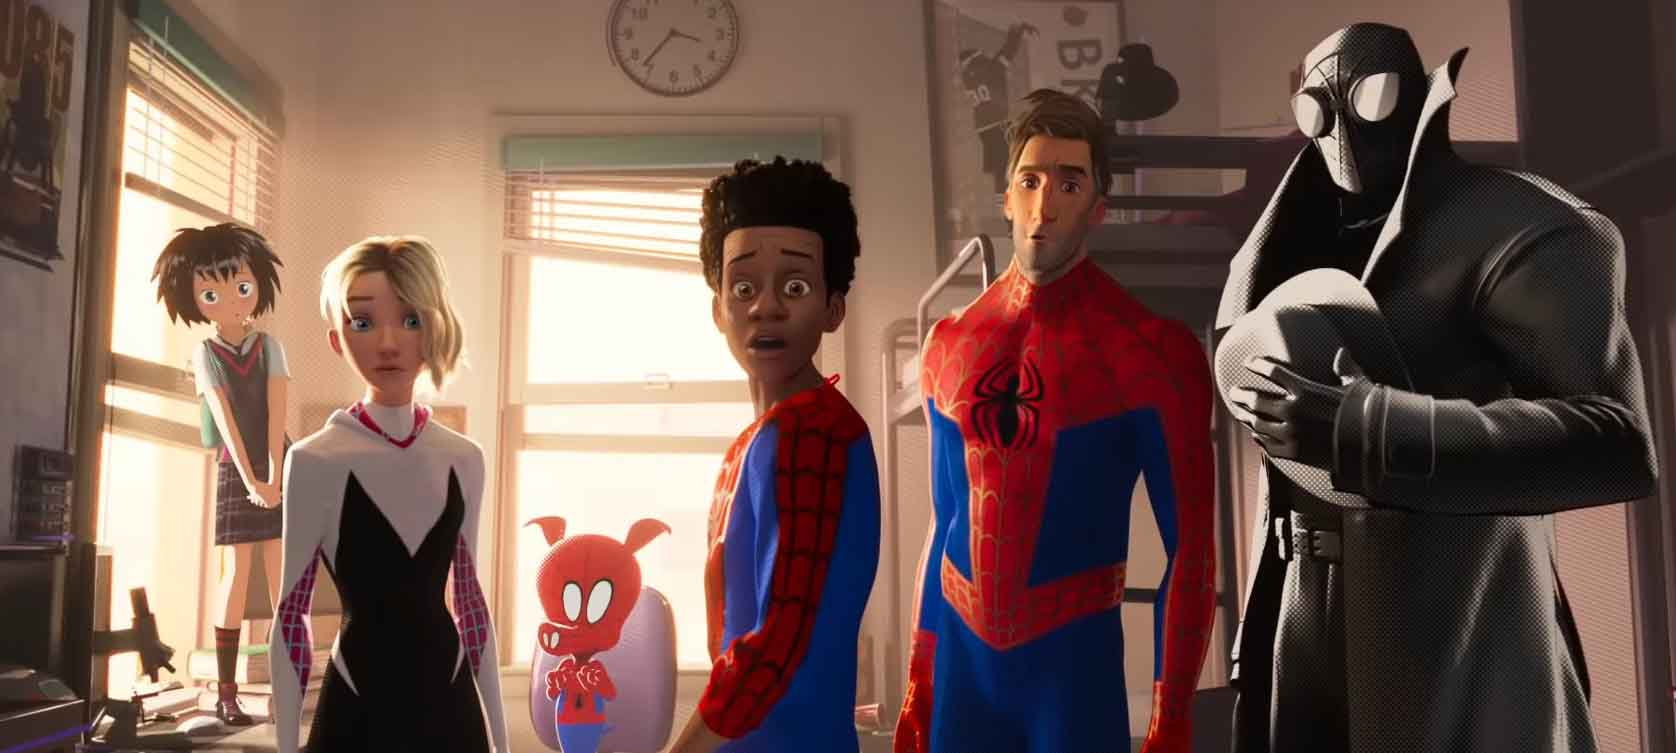 New Trailer for Spider-Man: Into the Spider-Verse Features More Spider-People